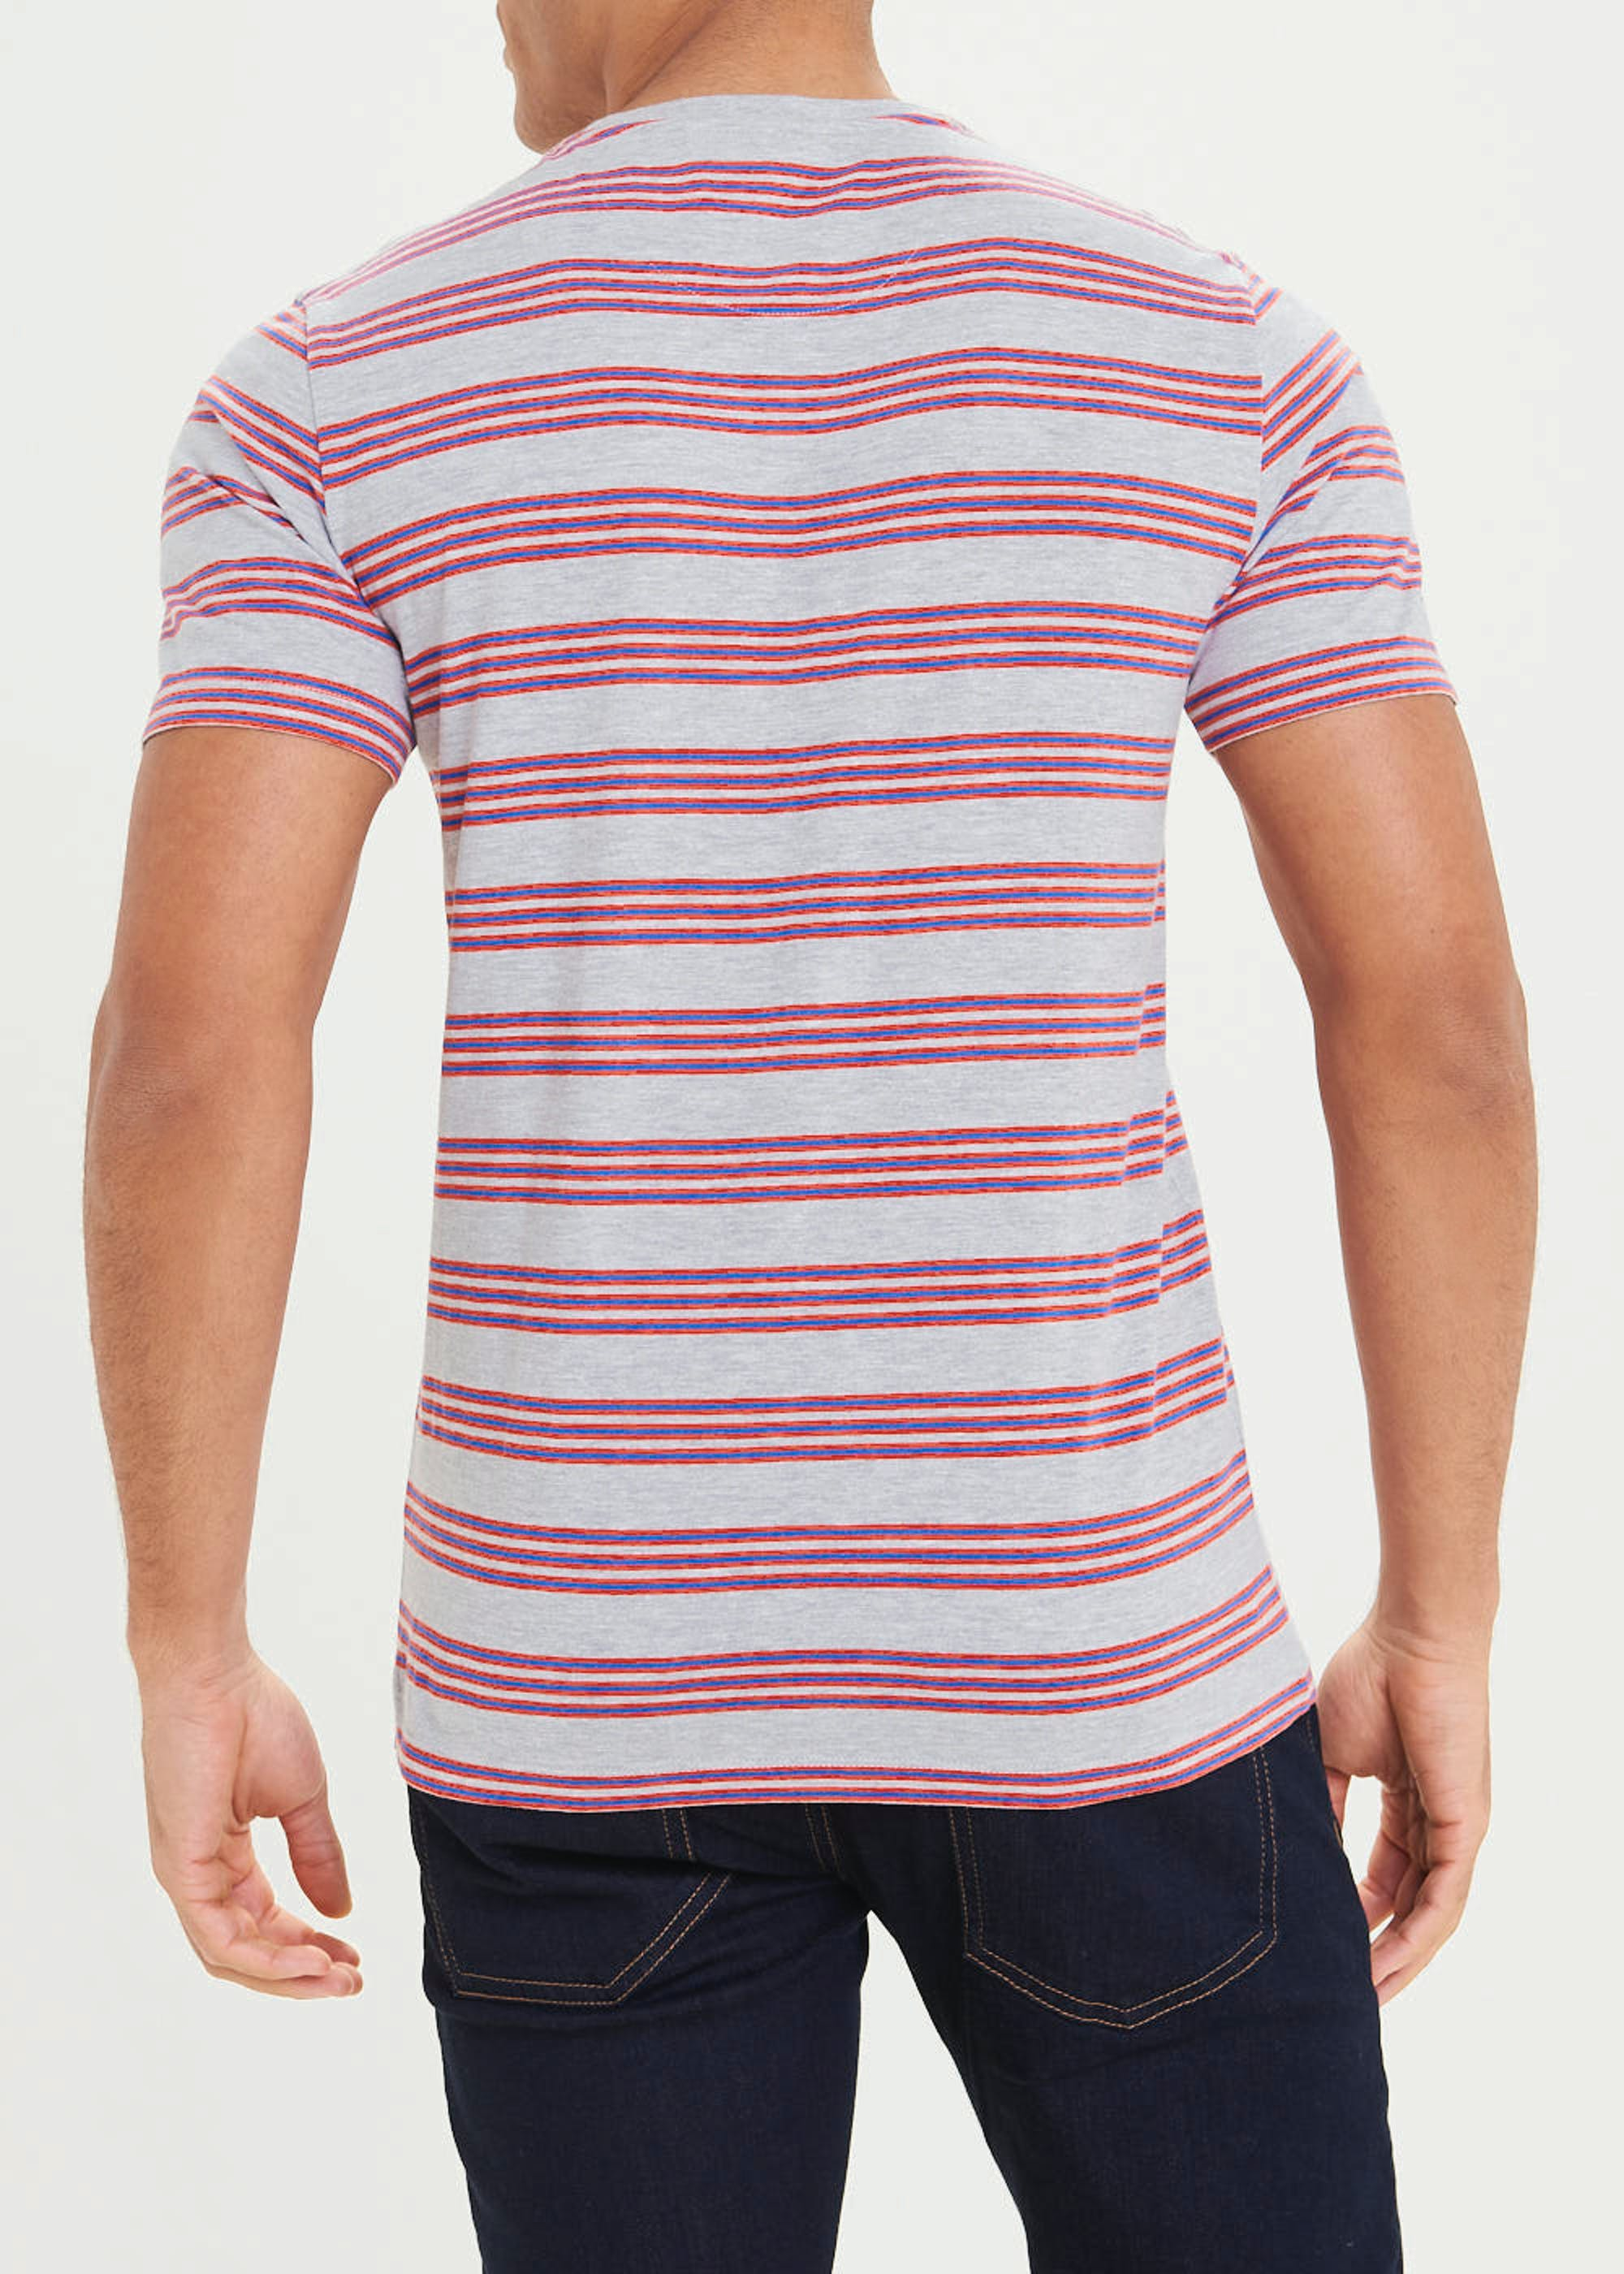 Stripe Crew Neck T-Shirt Grey 2b1z9e